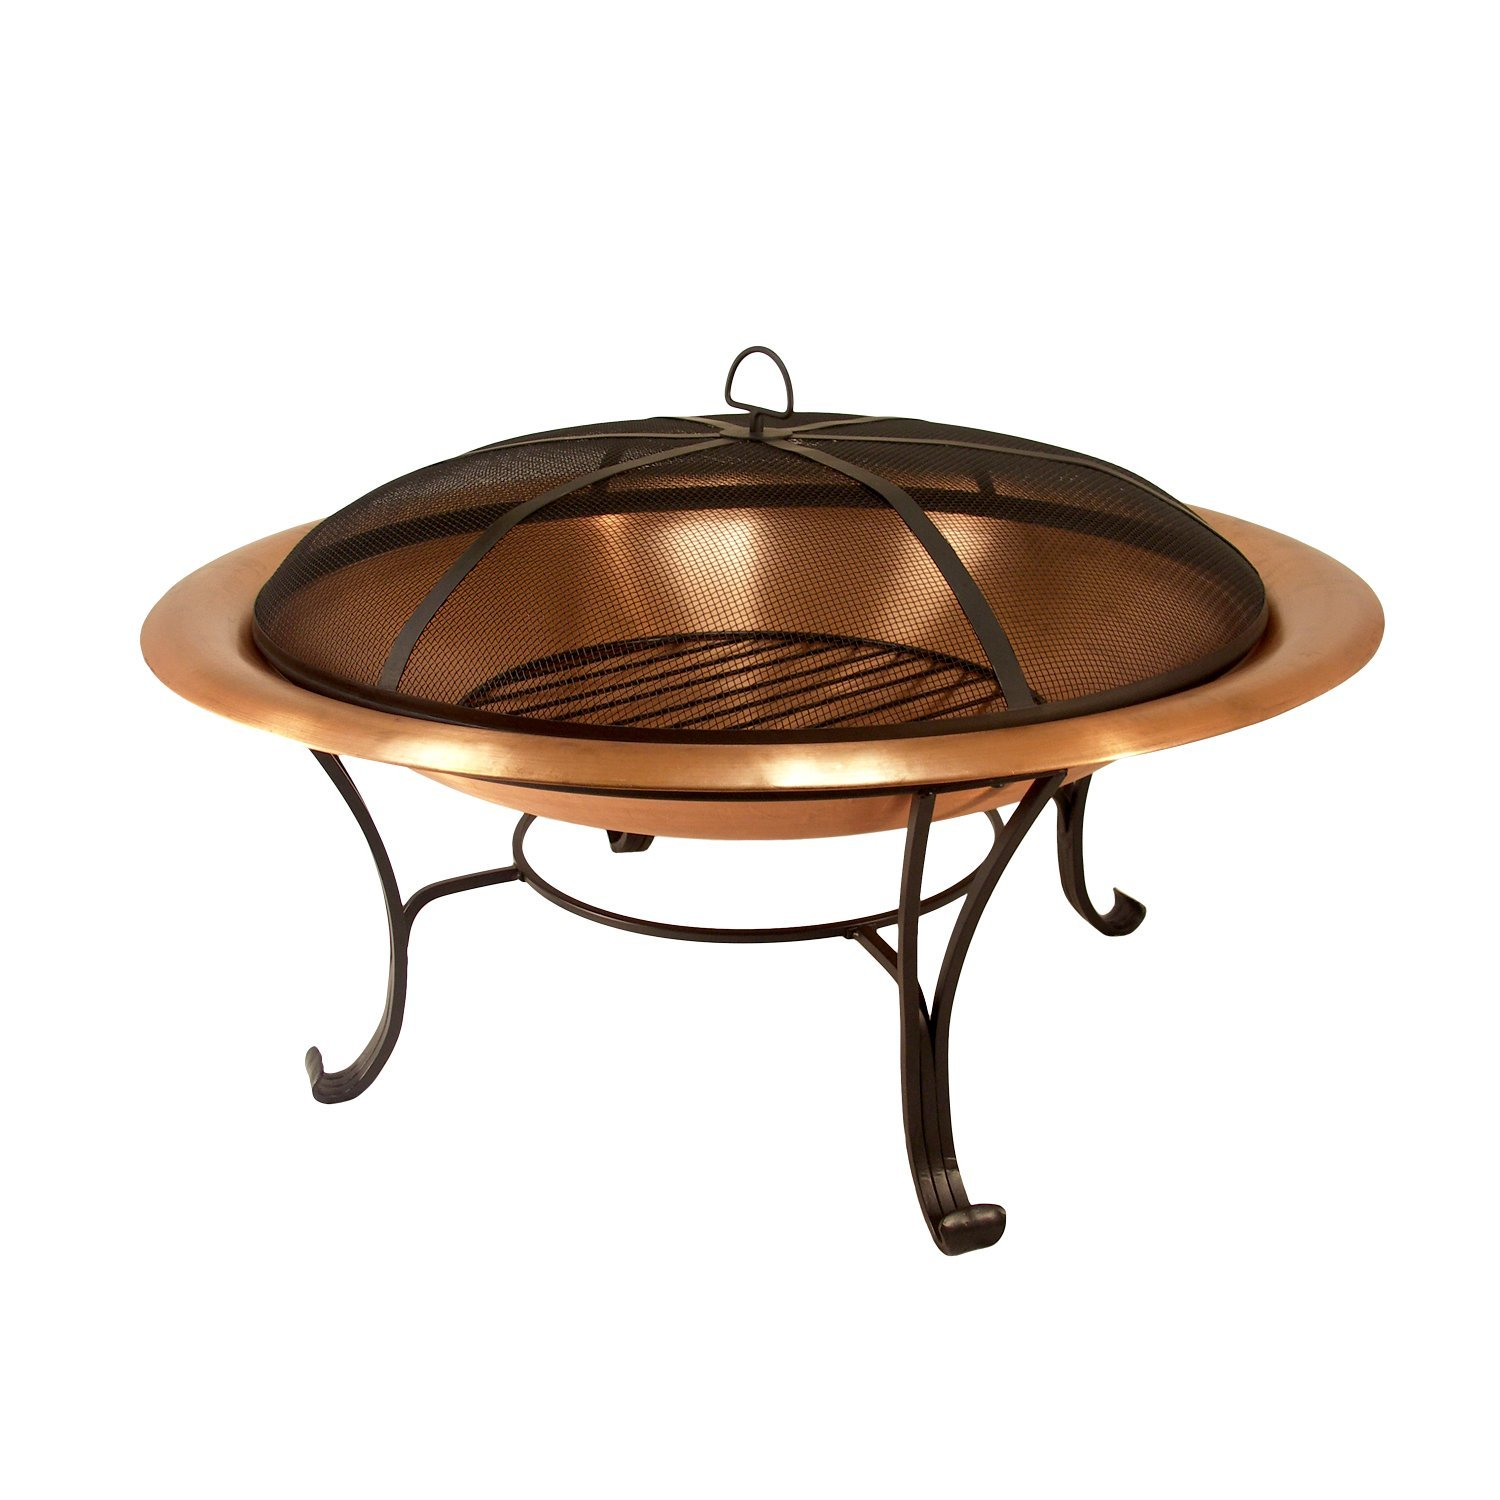 Asia Direct Catalina Creations 100% Solid Copper Fire Pit with Log Grate Lift Tool, 35'' L x 35'' W, Spark Screen